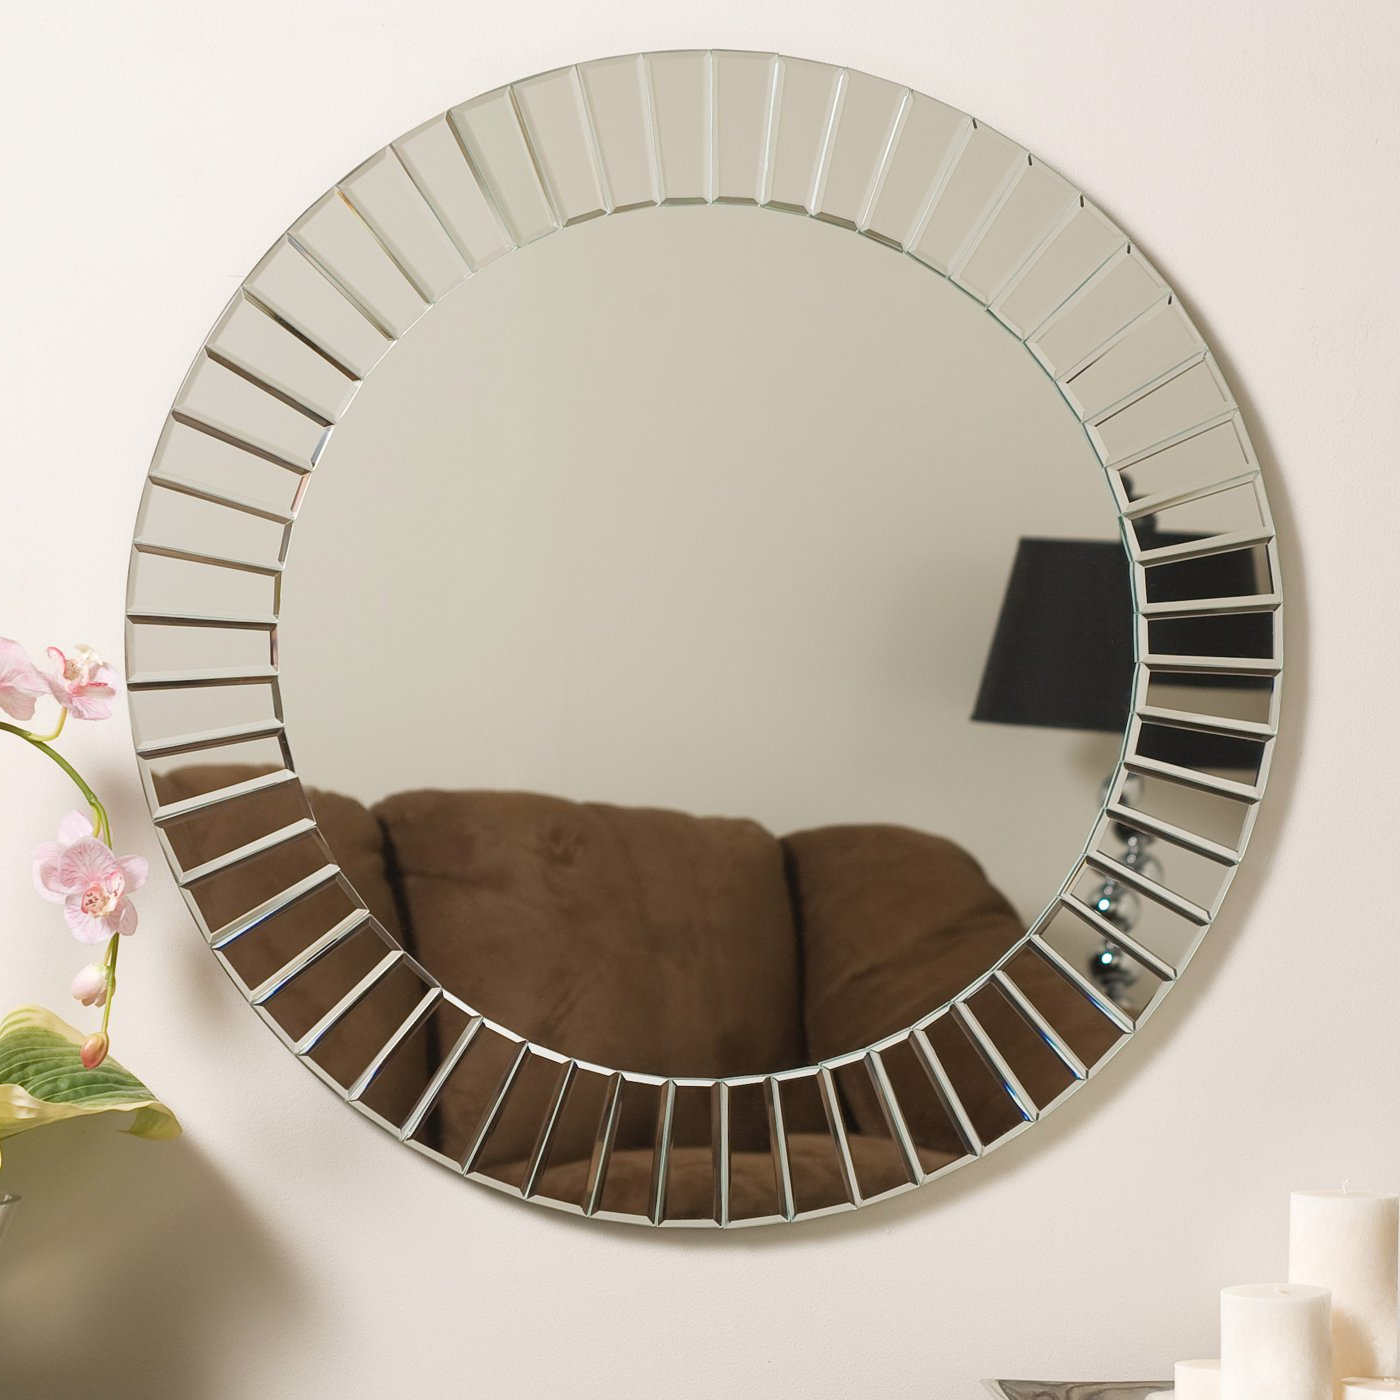 20 Best Frameless Round Wall Mirrors